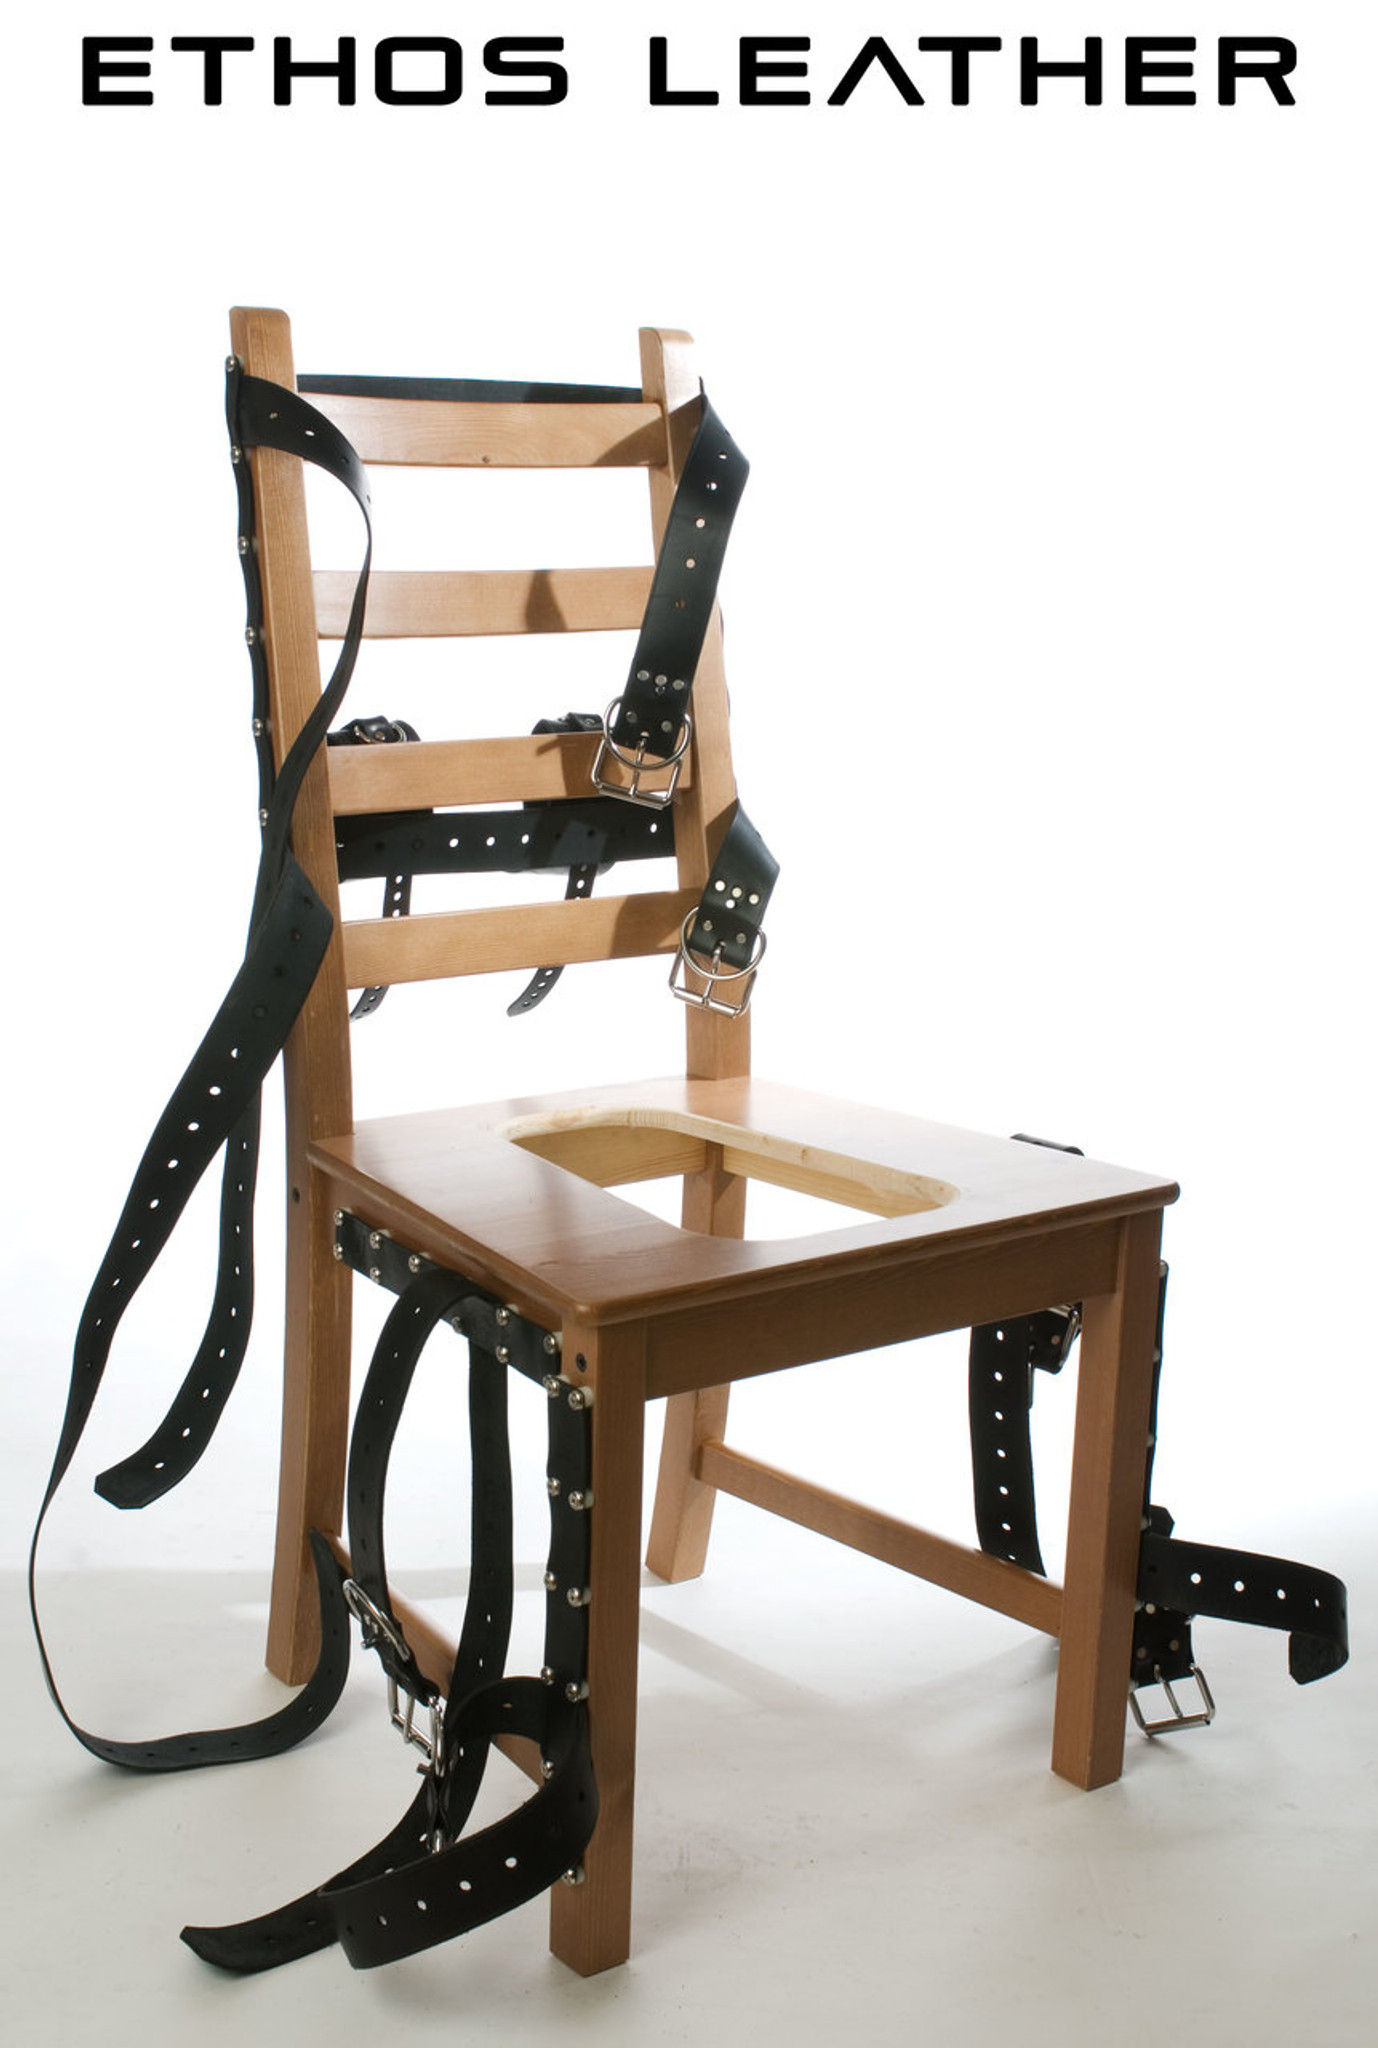 Diy Bondage Chair Kit Ethosleather Com